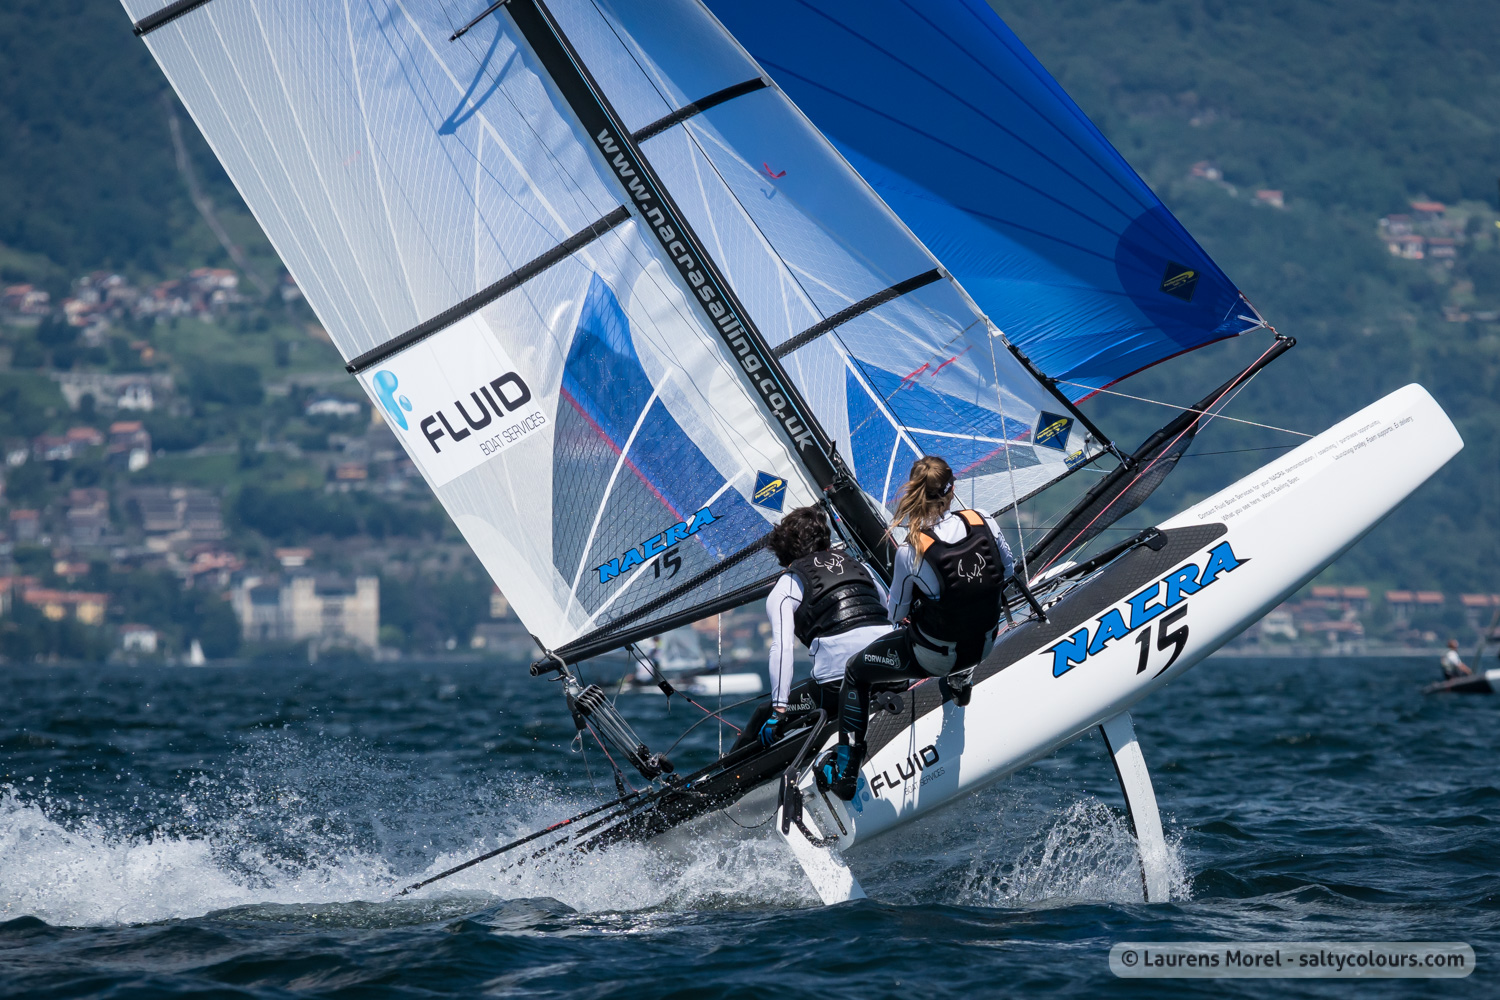 Nacra 15 is the biggest fleet at 2018 European Championships